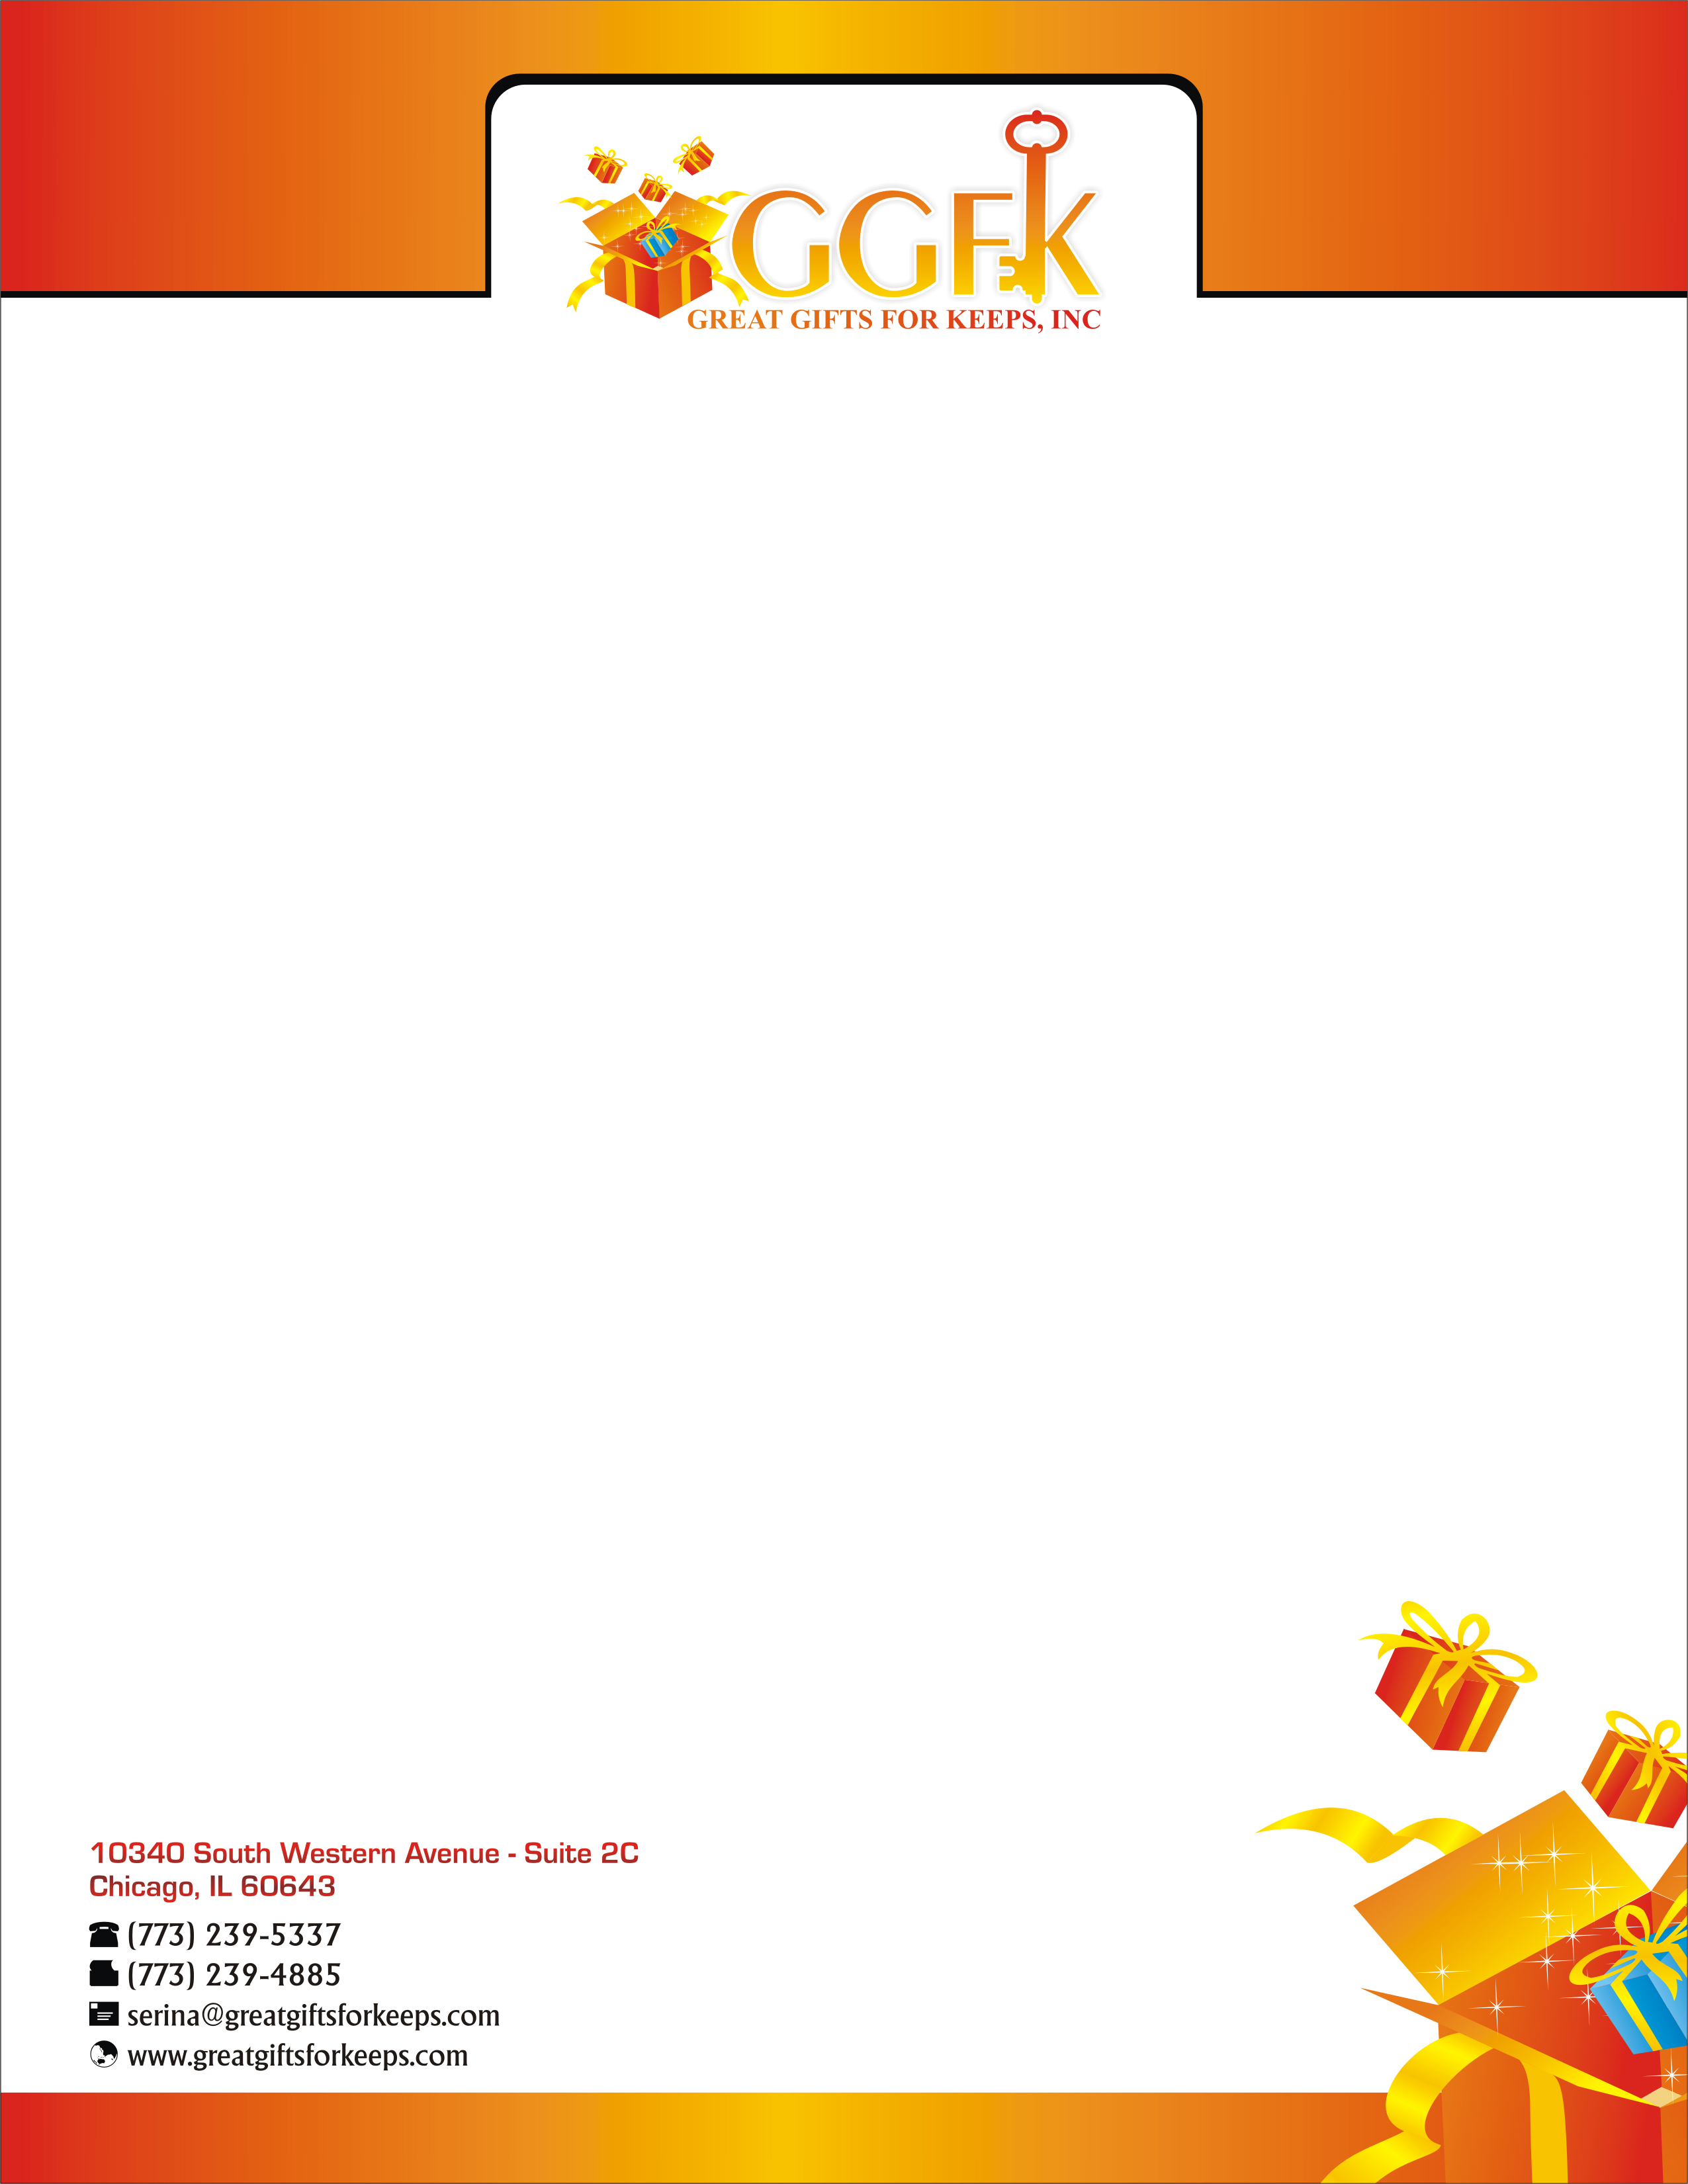 Letterhead Design Ideas letterhead design ideas thinkhaus designs identity and website for remax midway Creative Letterhead Design Ideas